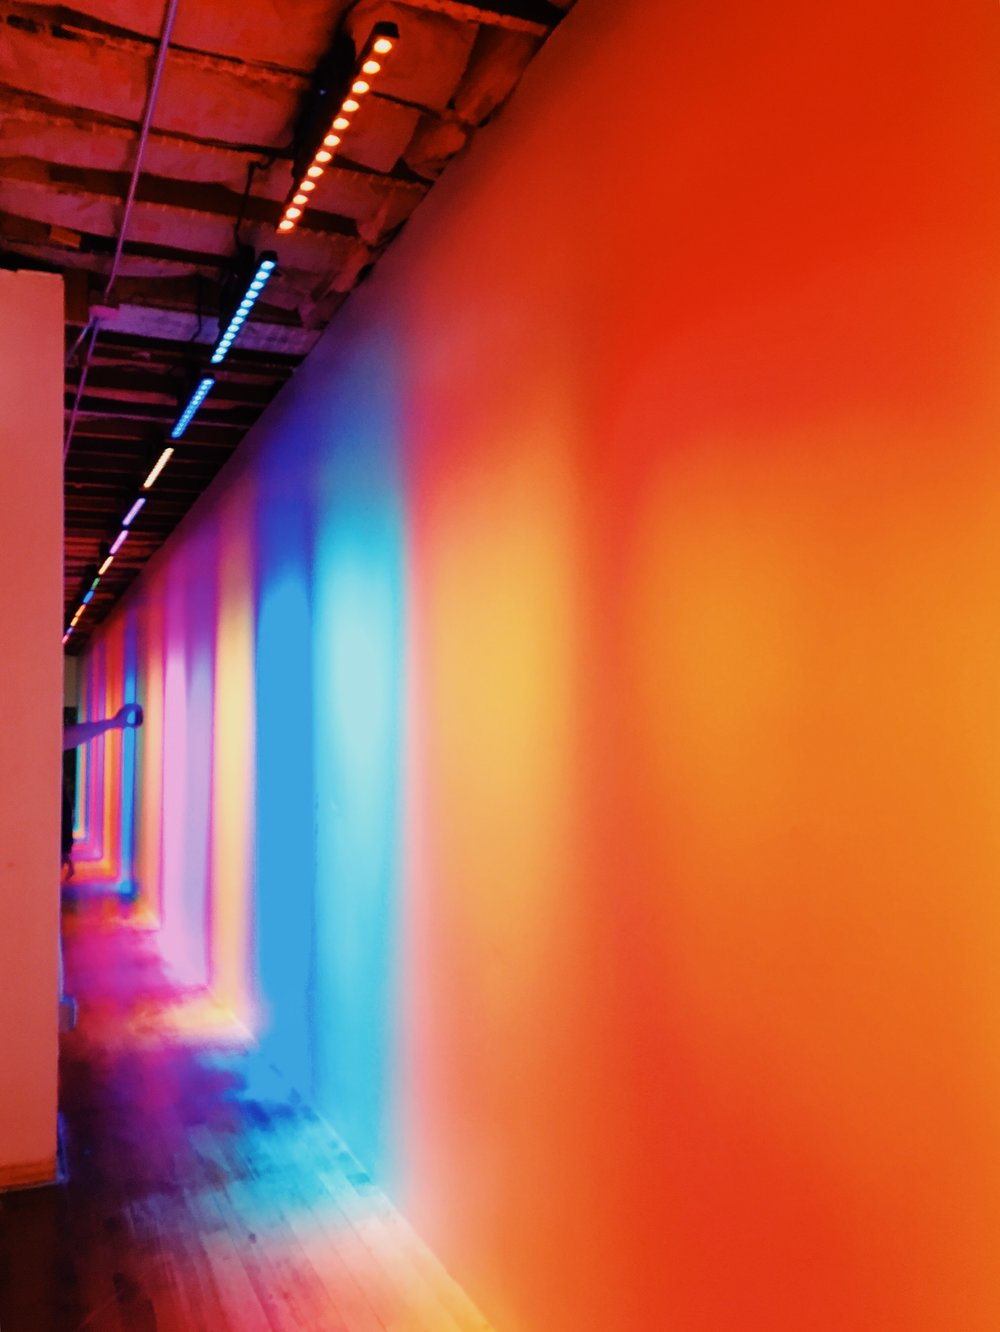 Even the hallways were decked in color